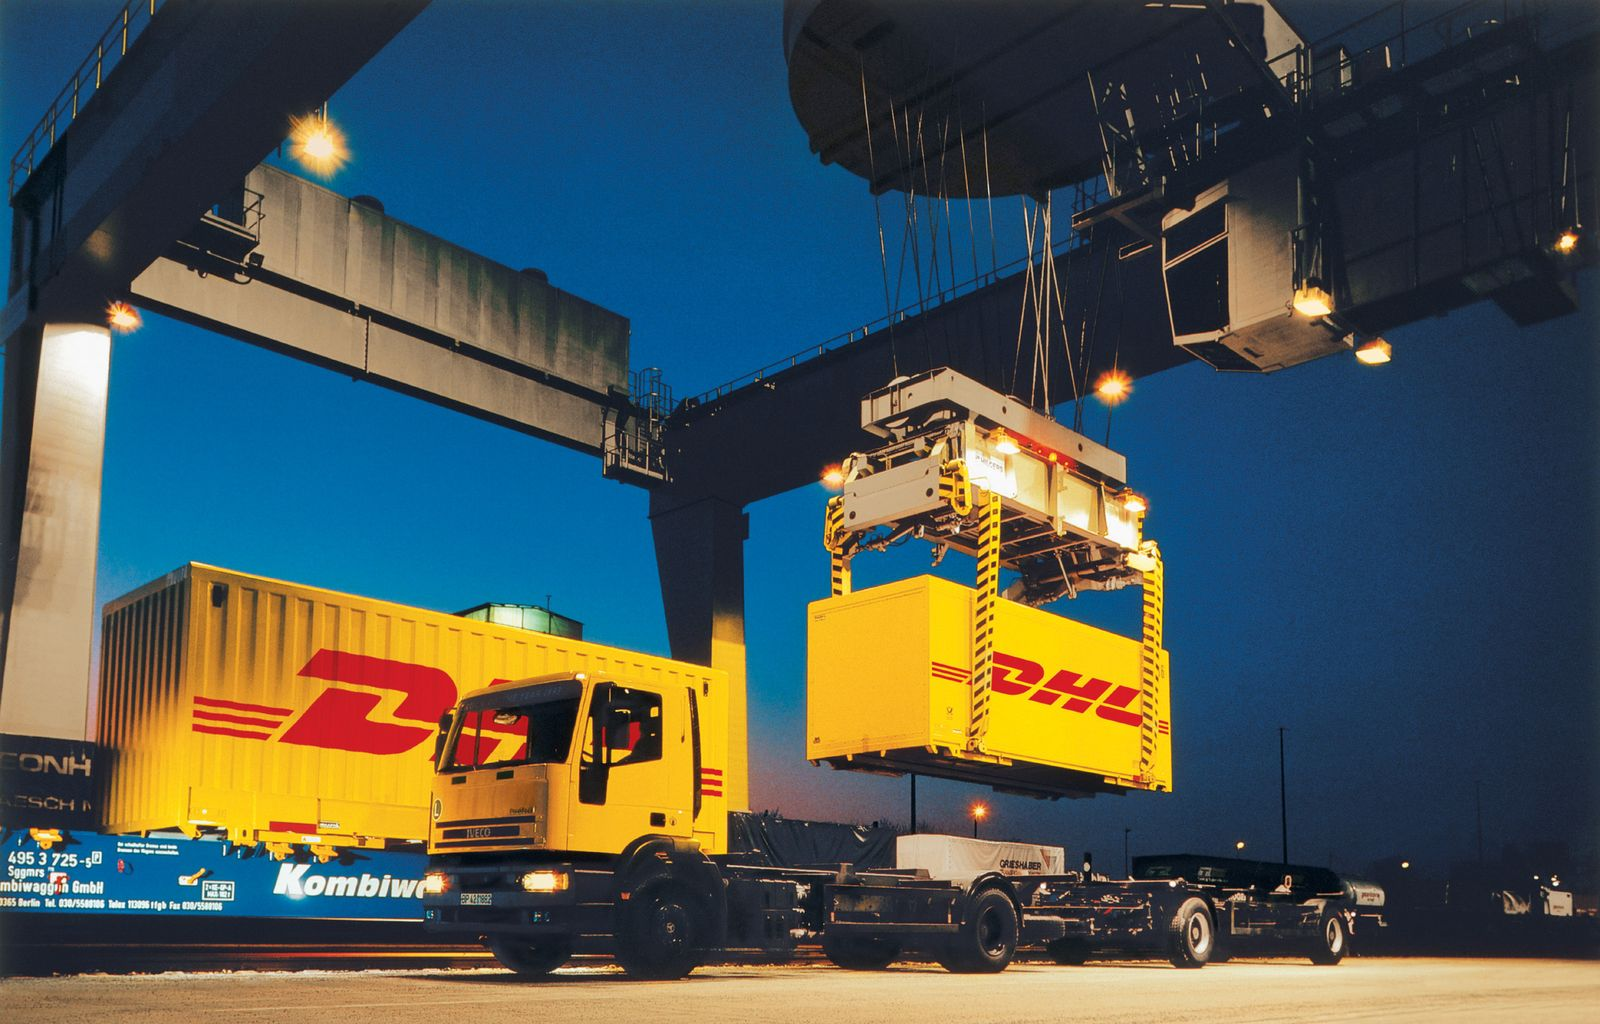 DHL / Supply Chain / Frachtcontainerverladung